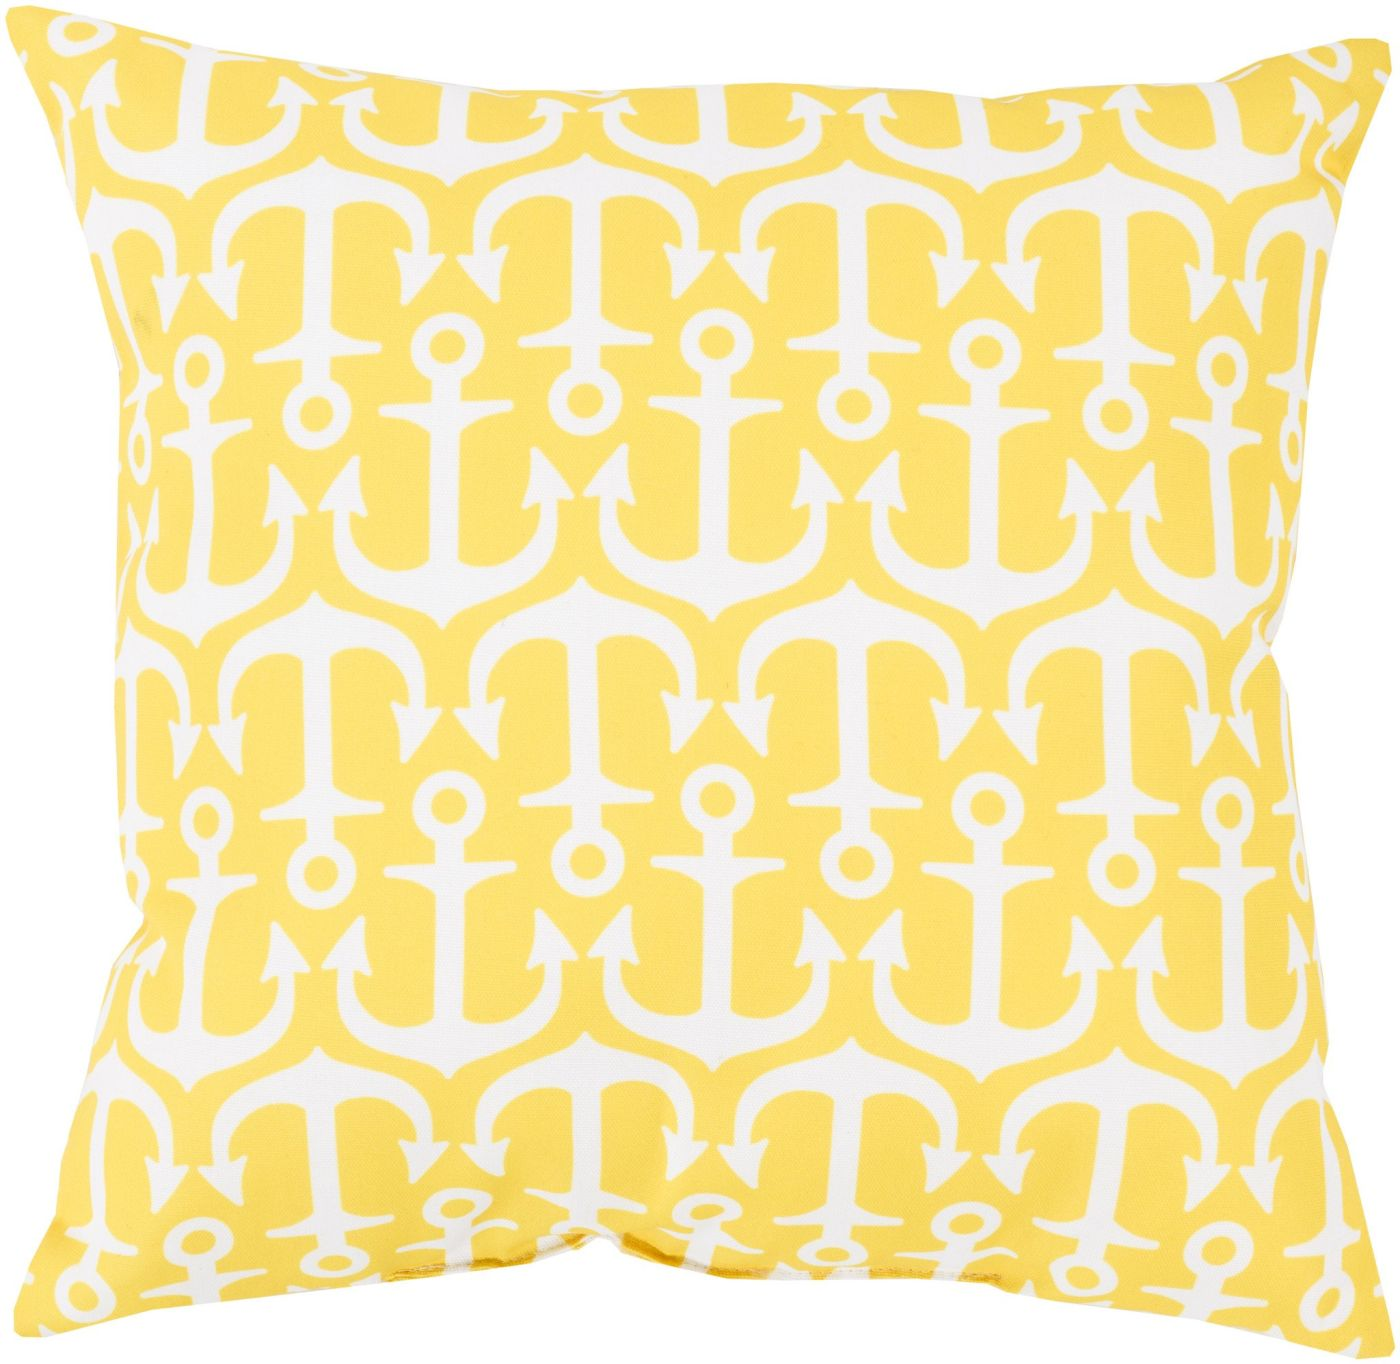 Throw Pillows Native American : Surya Rain Throw Pillow Yellow, Neutral RG113-1818. Only $37.80 at Contemporary Furniture Warehouse.